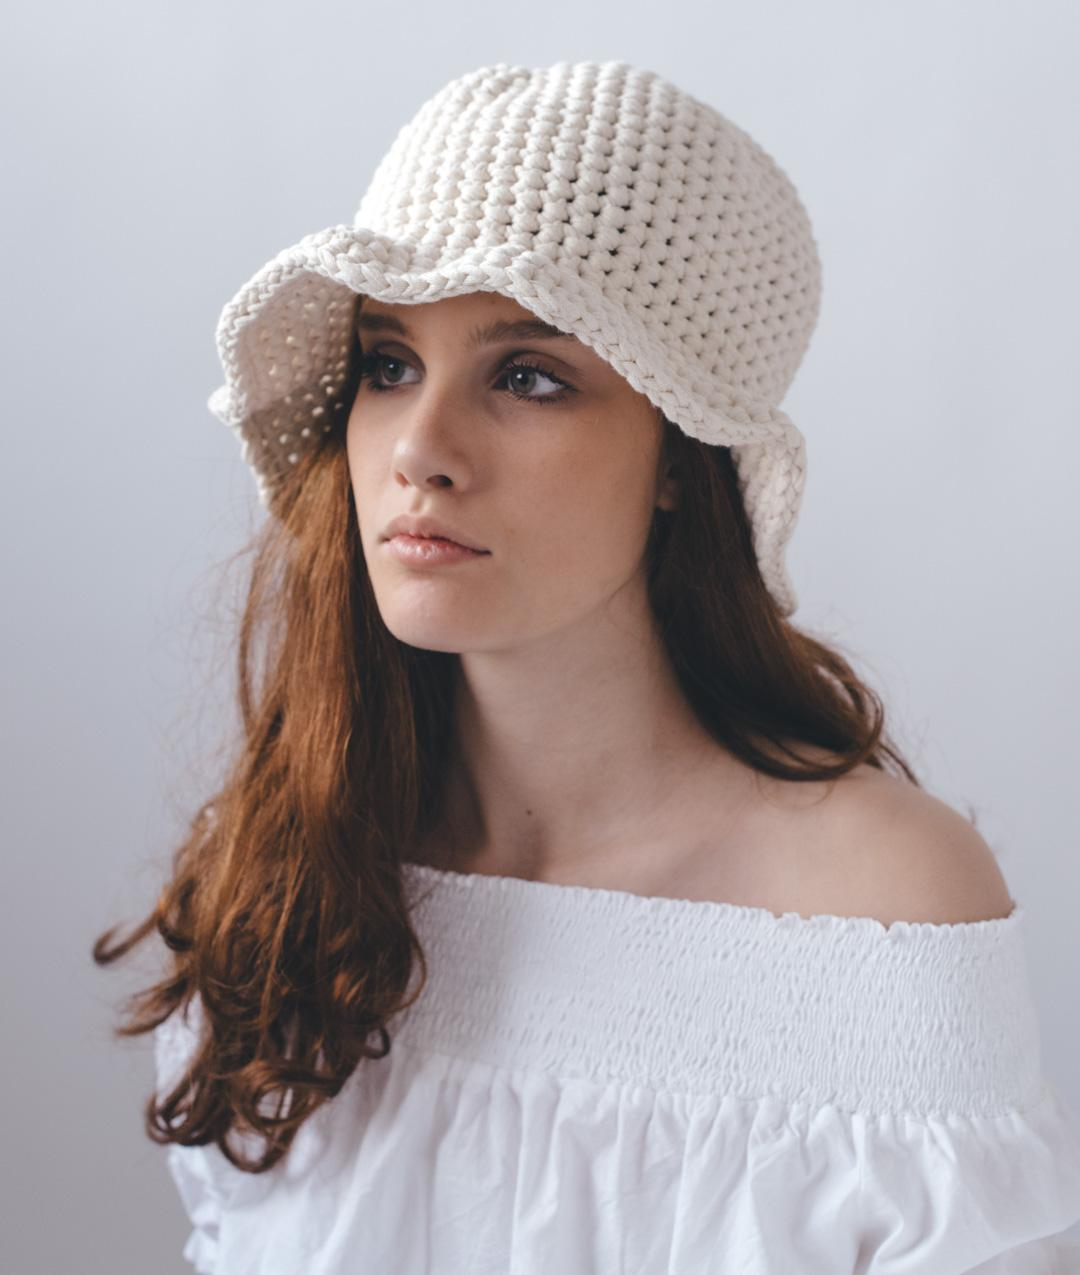 Hats and Beanies - Cotton - Lolly Hat - 1